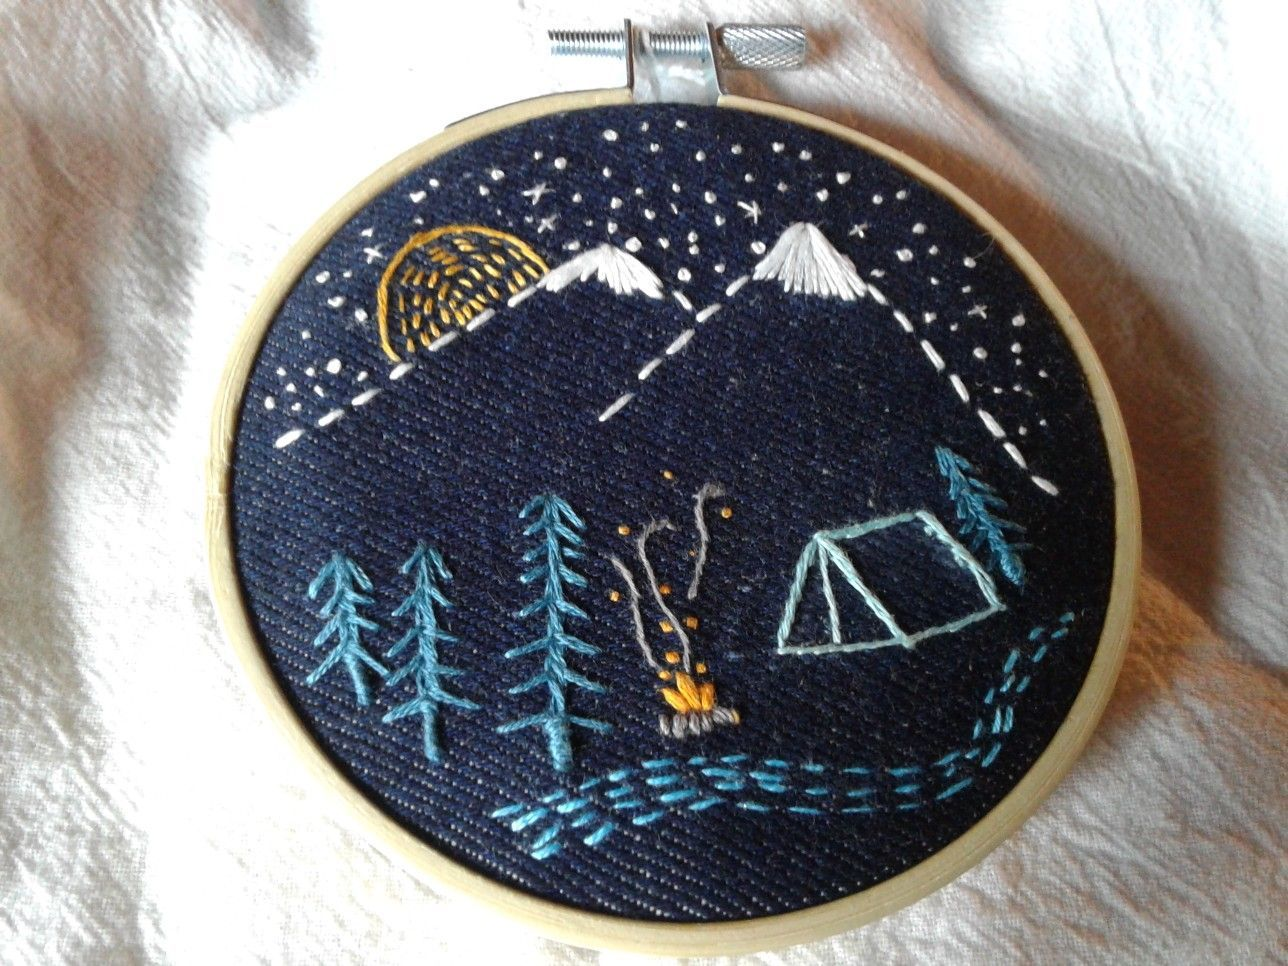 Embroidery hoop art tent camping mountains campfire stitched on